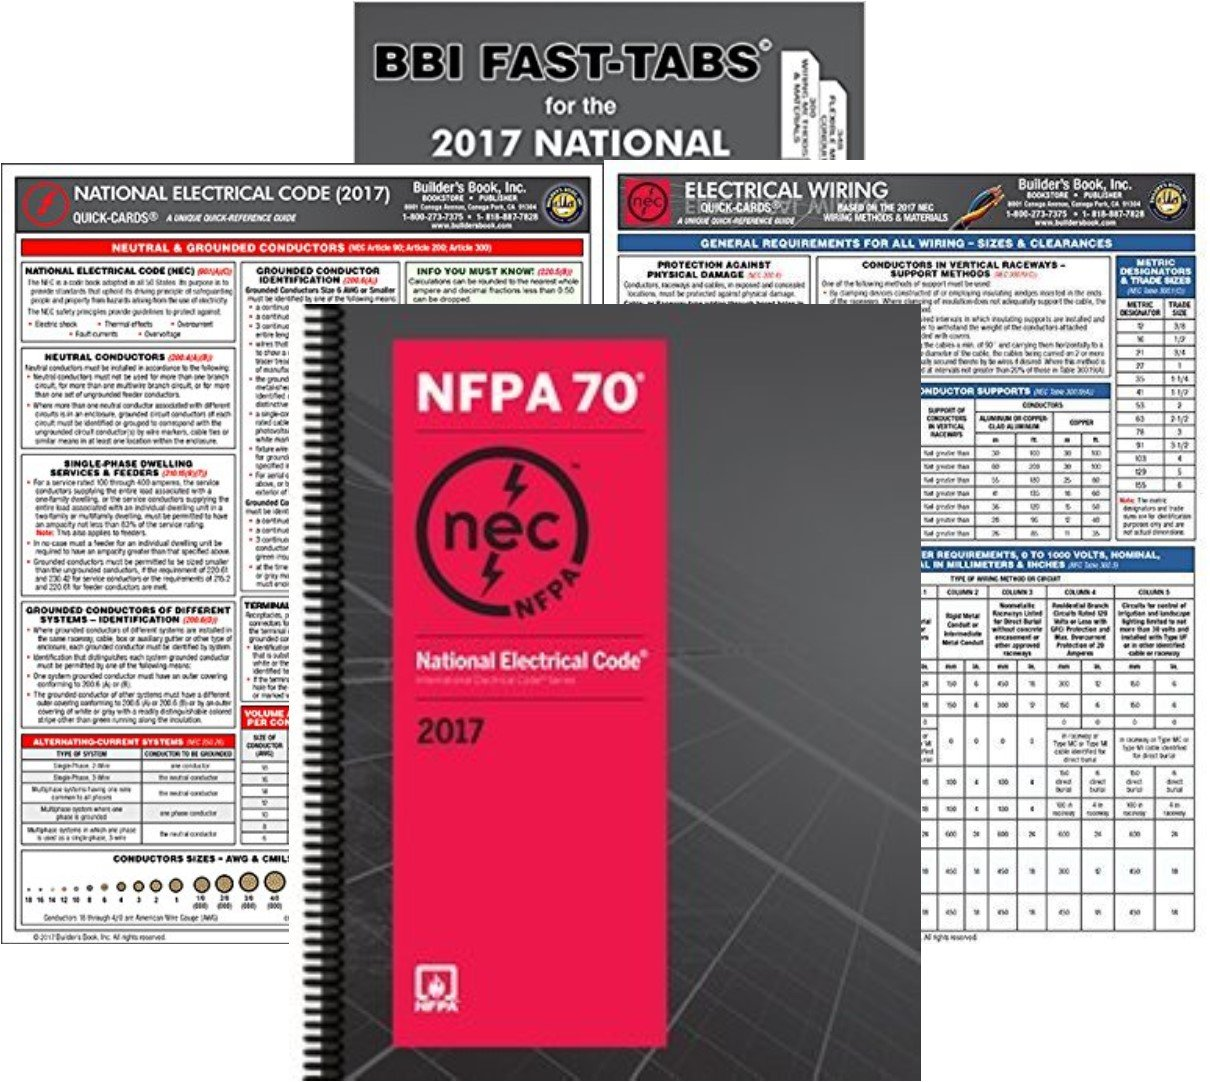 Amazon.com: NFPA 70 2017: National Electrical Code, NEC, Spiralbound ...